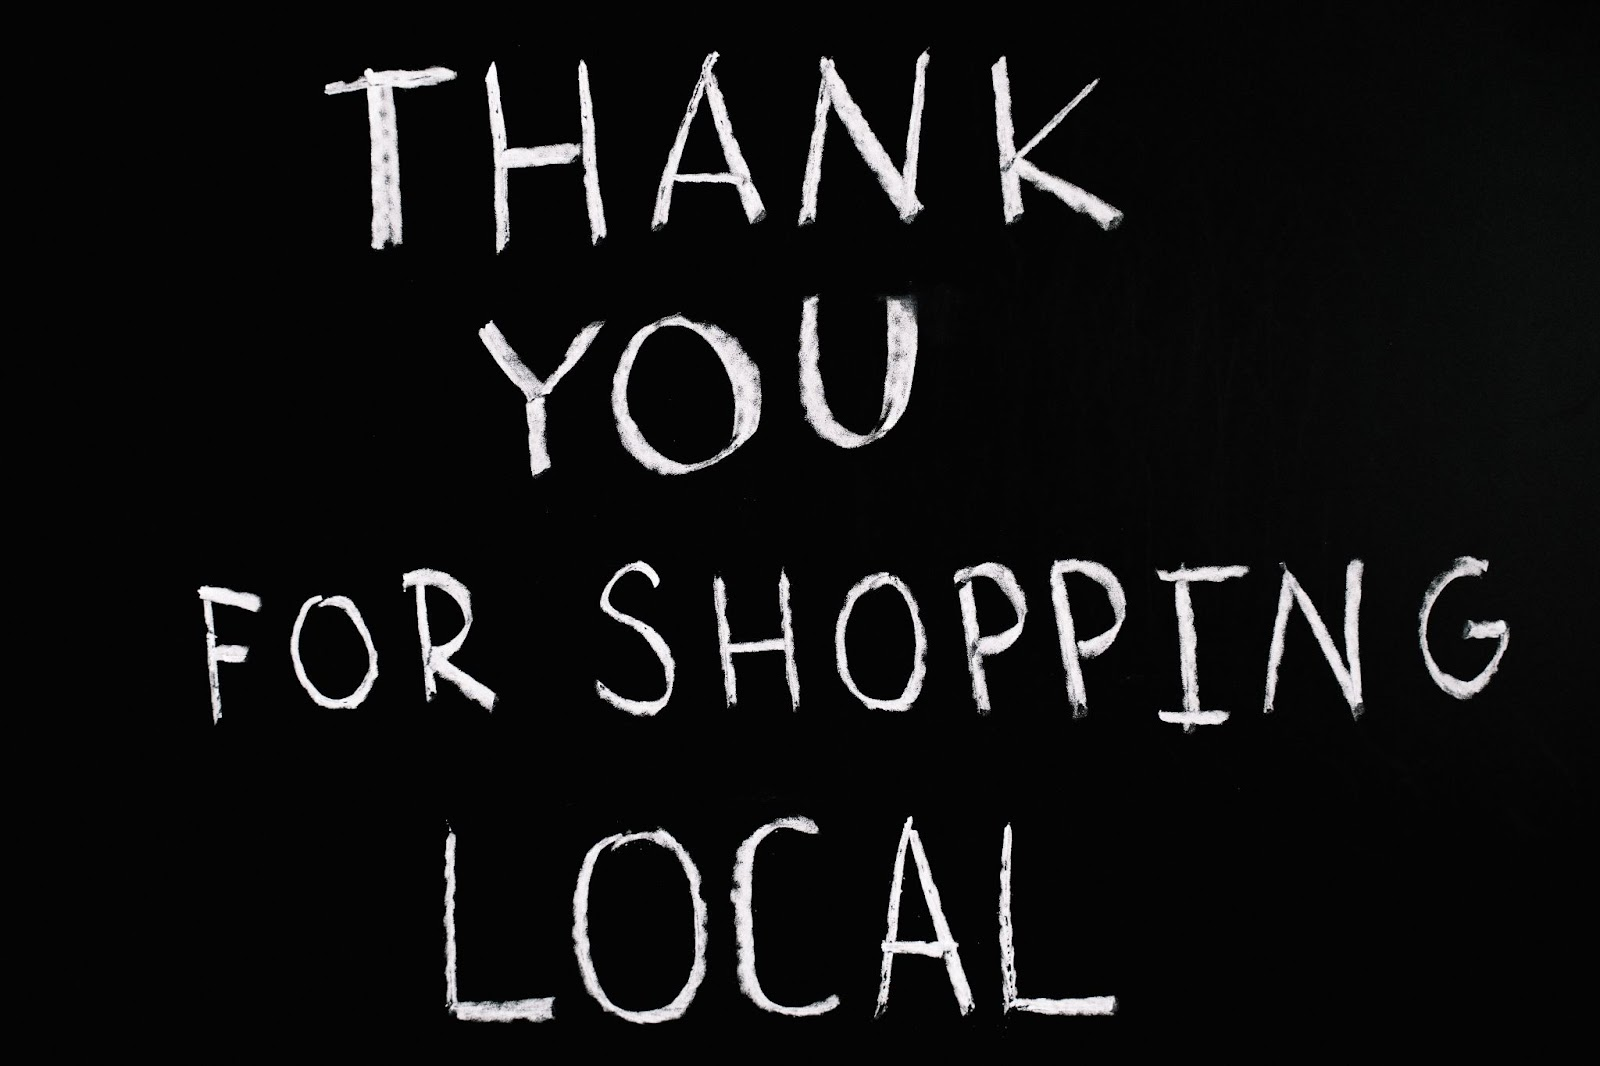 Before you shop local banner